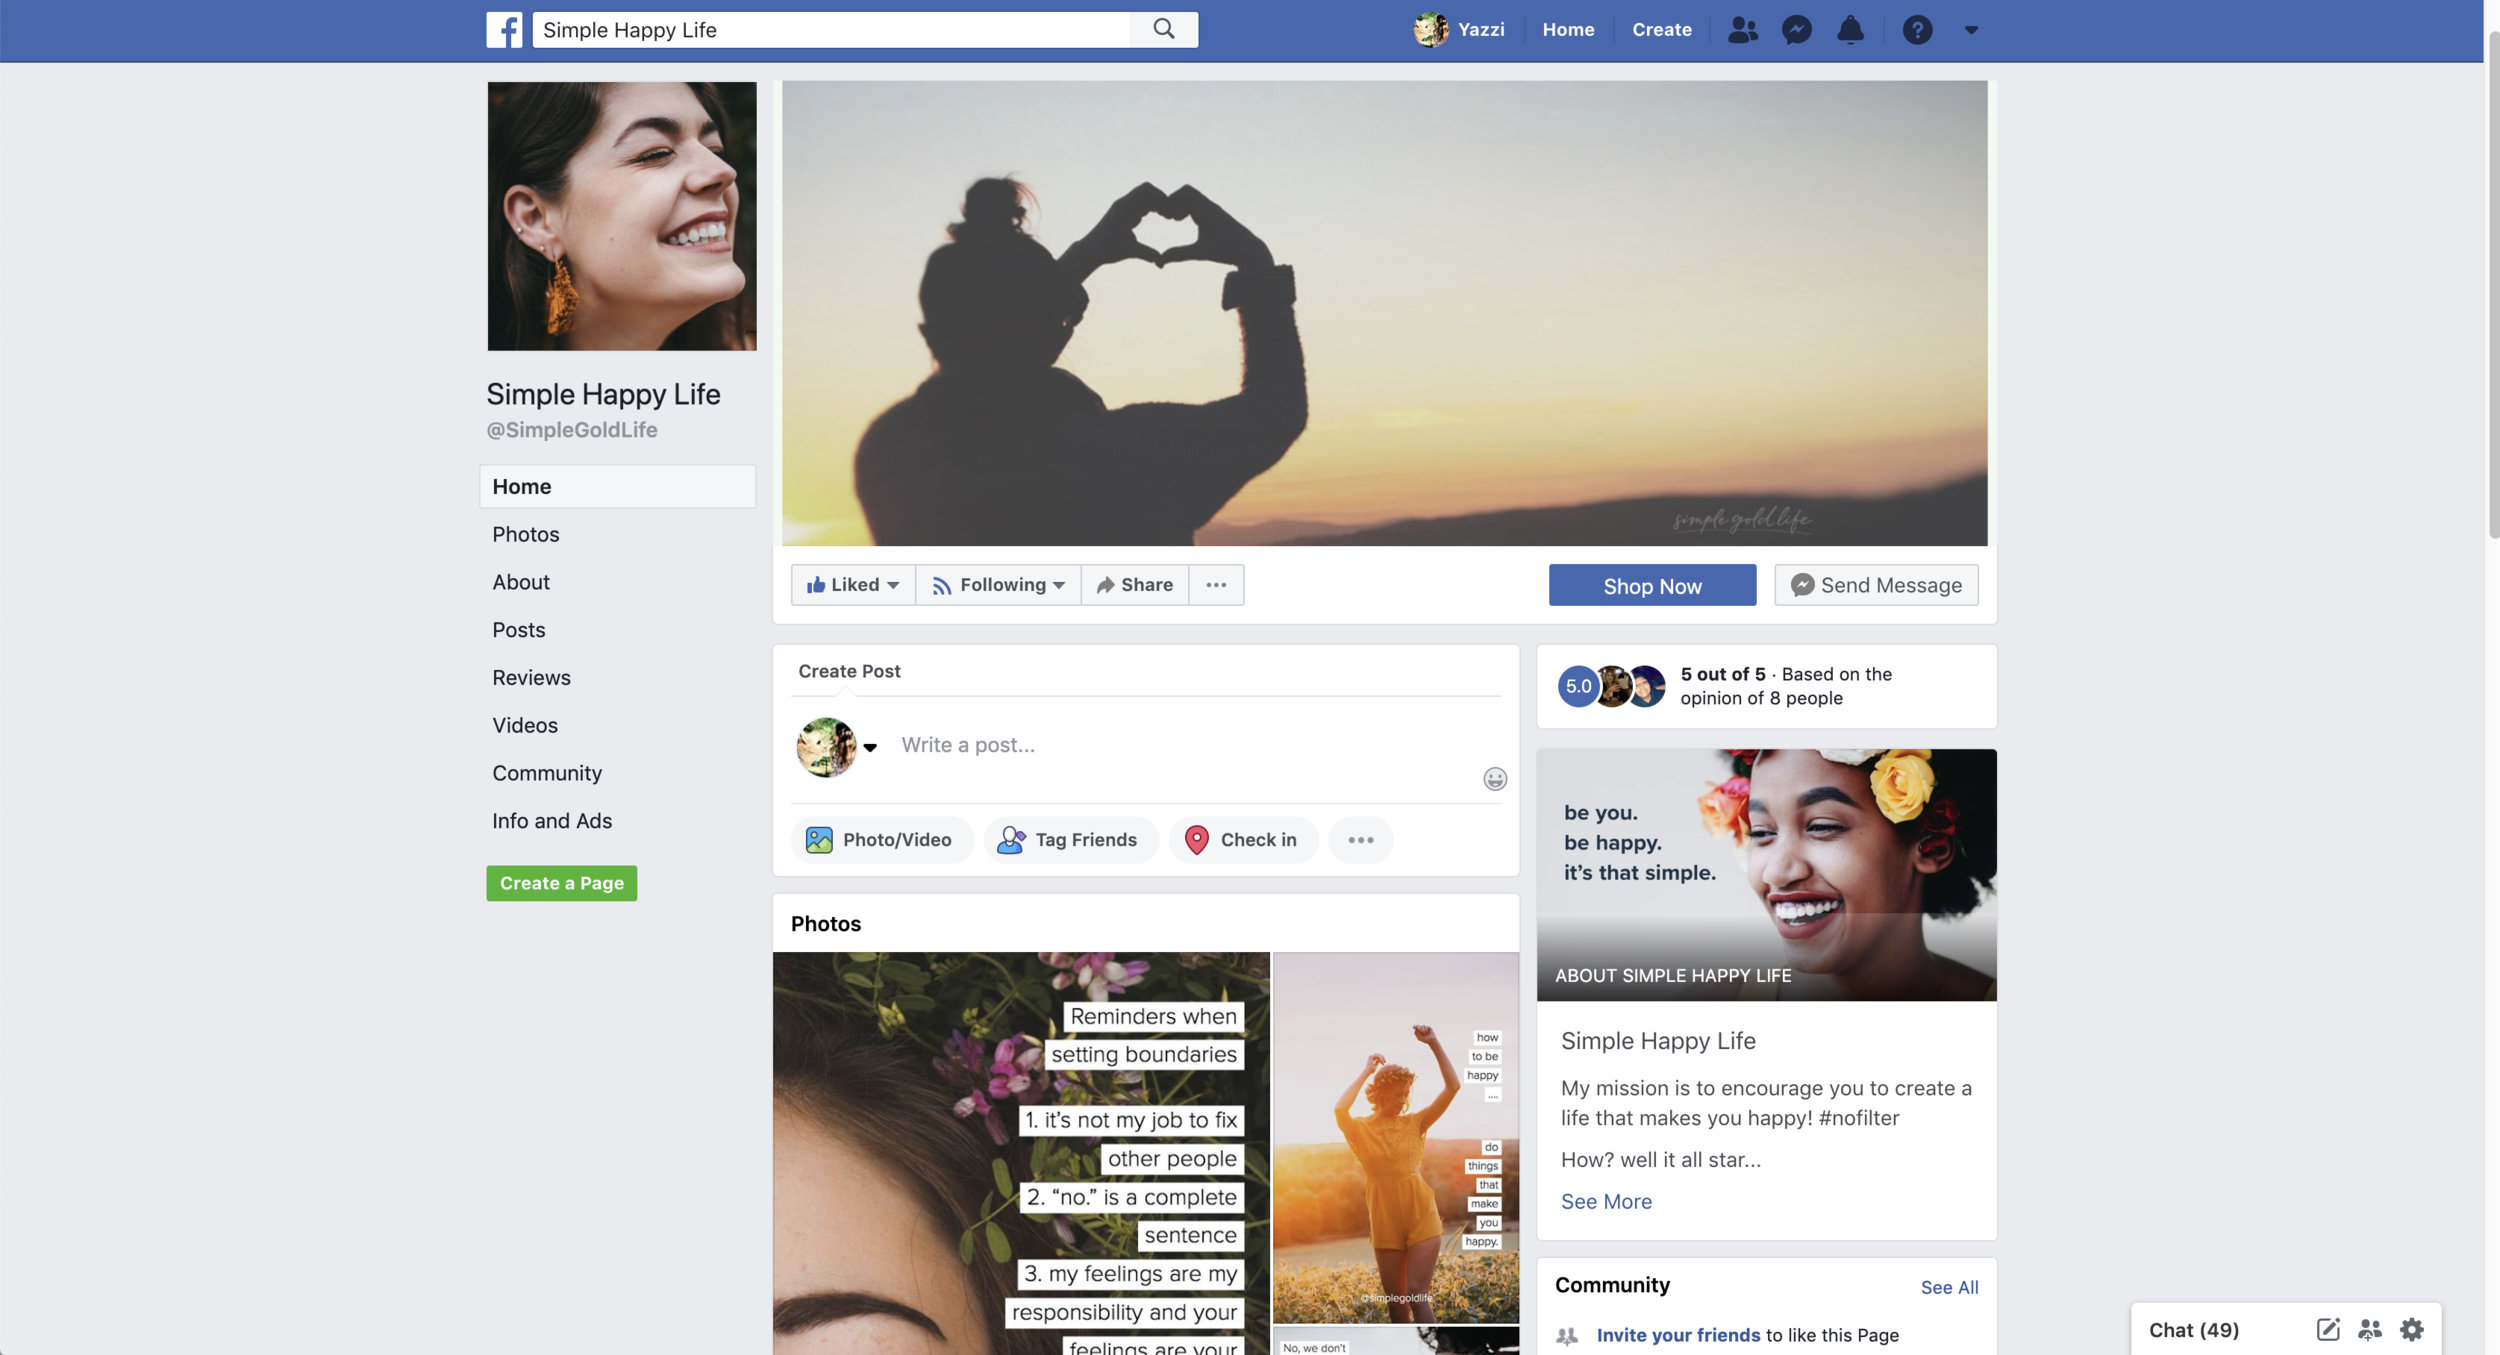 Simple Gold Life Facebook Page #facebookpagetips #facebookpagelikes #facebookpageforbusiness